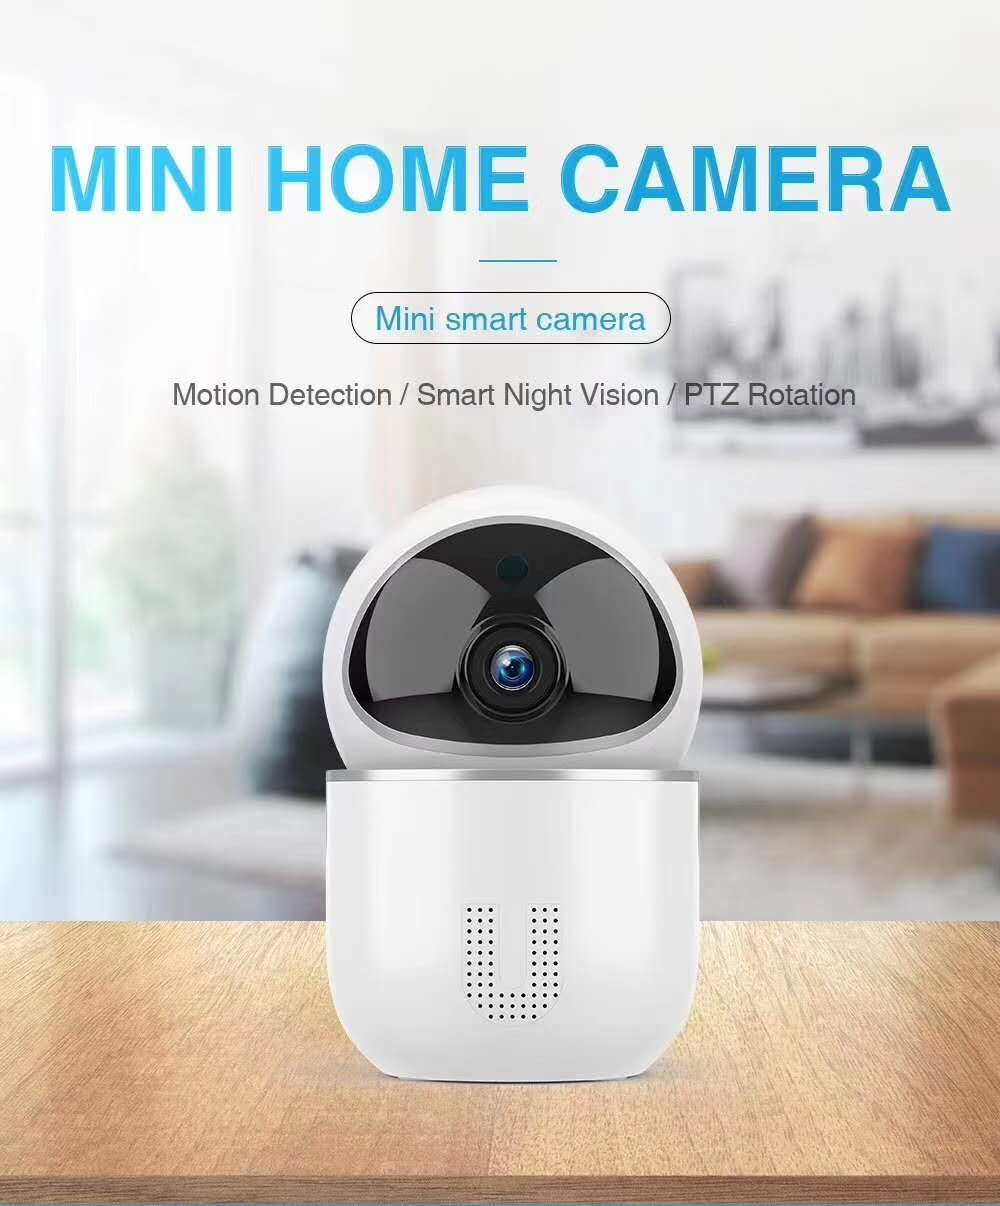 2MP 1080P Motion Detection PTZ Rotation Wireless Intercom IP  Camera2MP 1080P Motion Detection PTZ Rotation Wireless Intercom IP  Camera